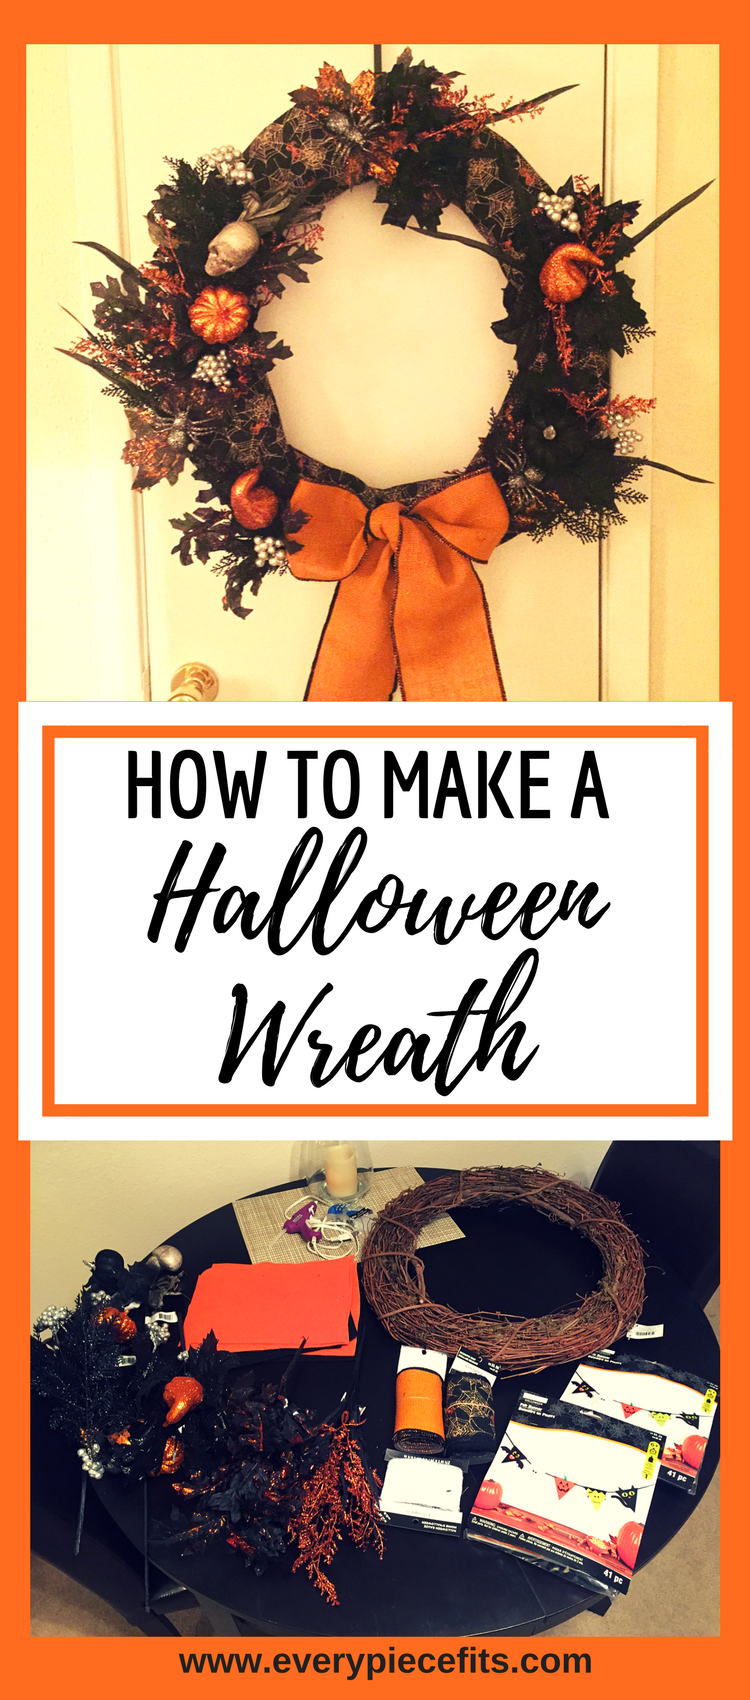 Pinterest How to Make a Halloween Wreath.png